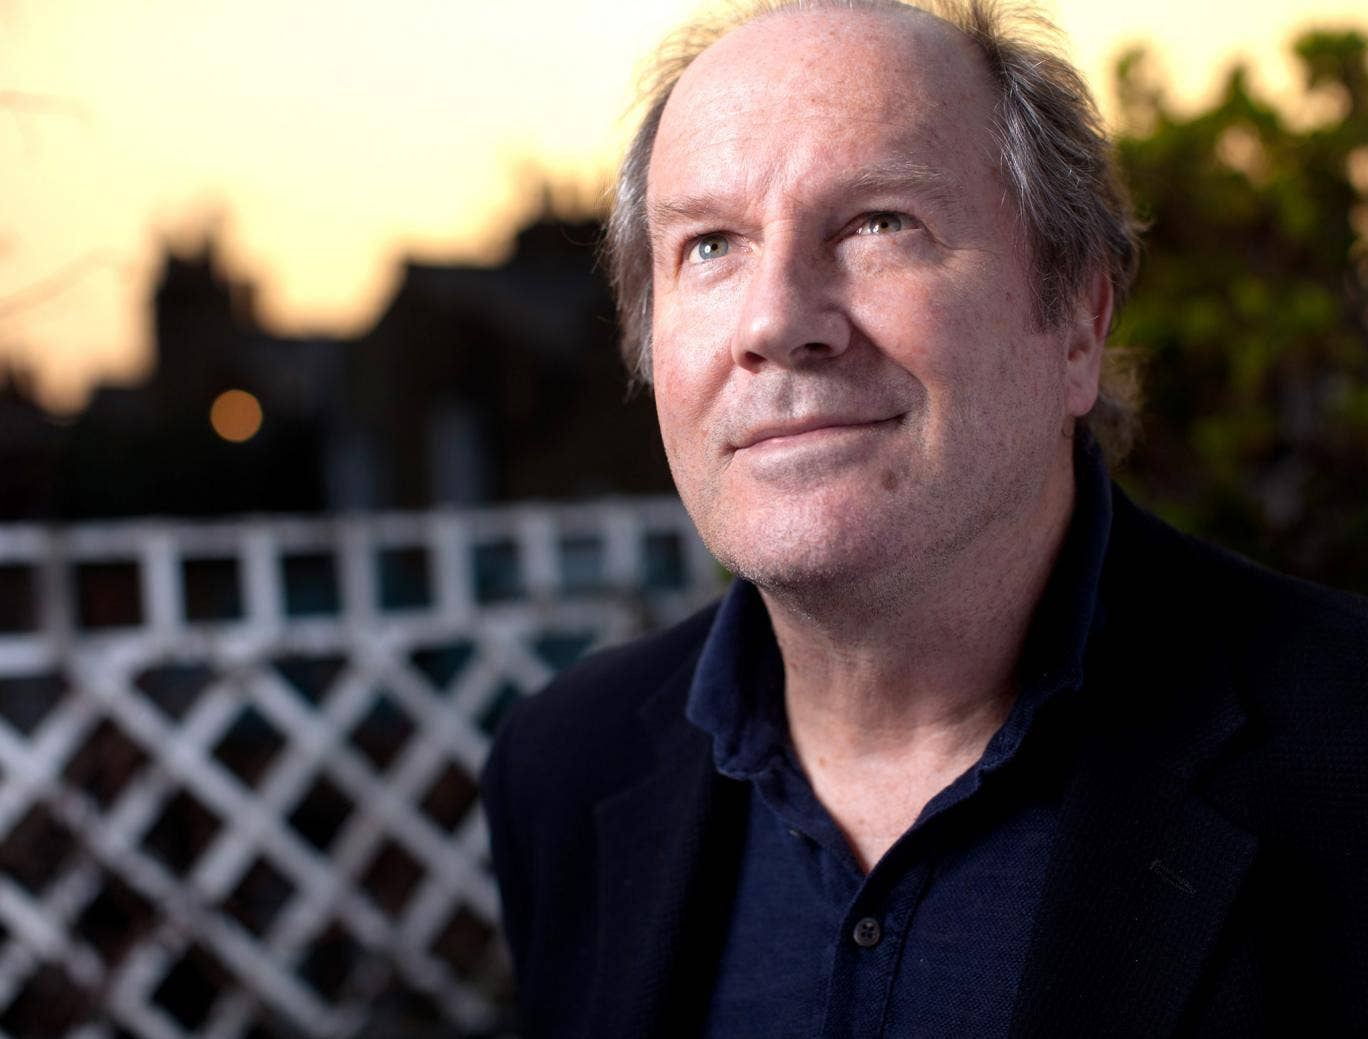 William Boyd's debut play Longing is being staged at the Hampstead theatre from 28 February